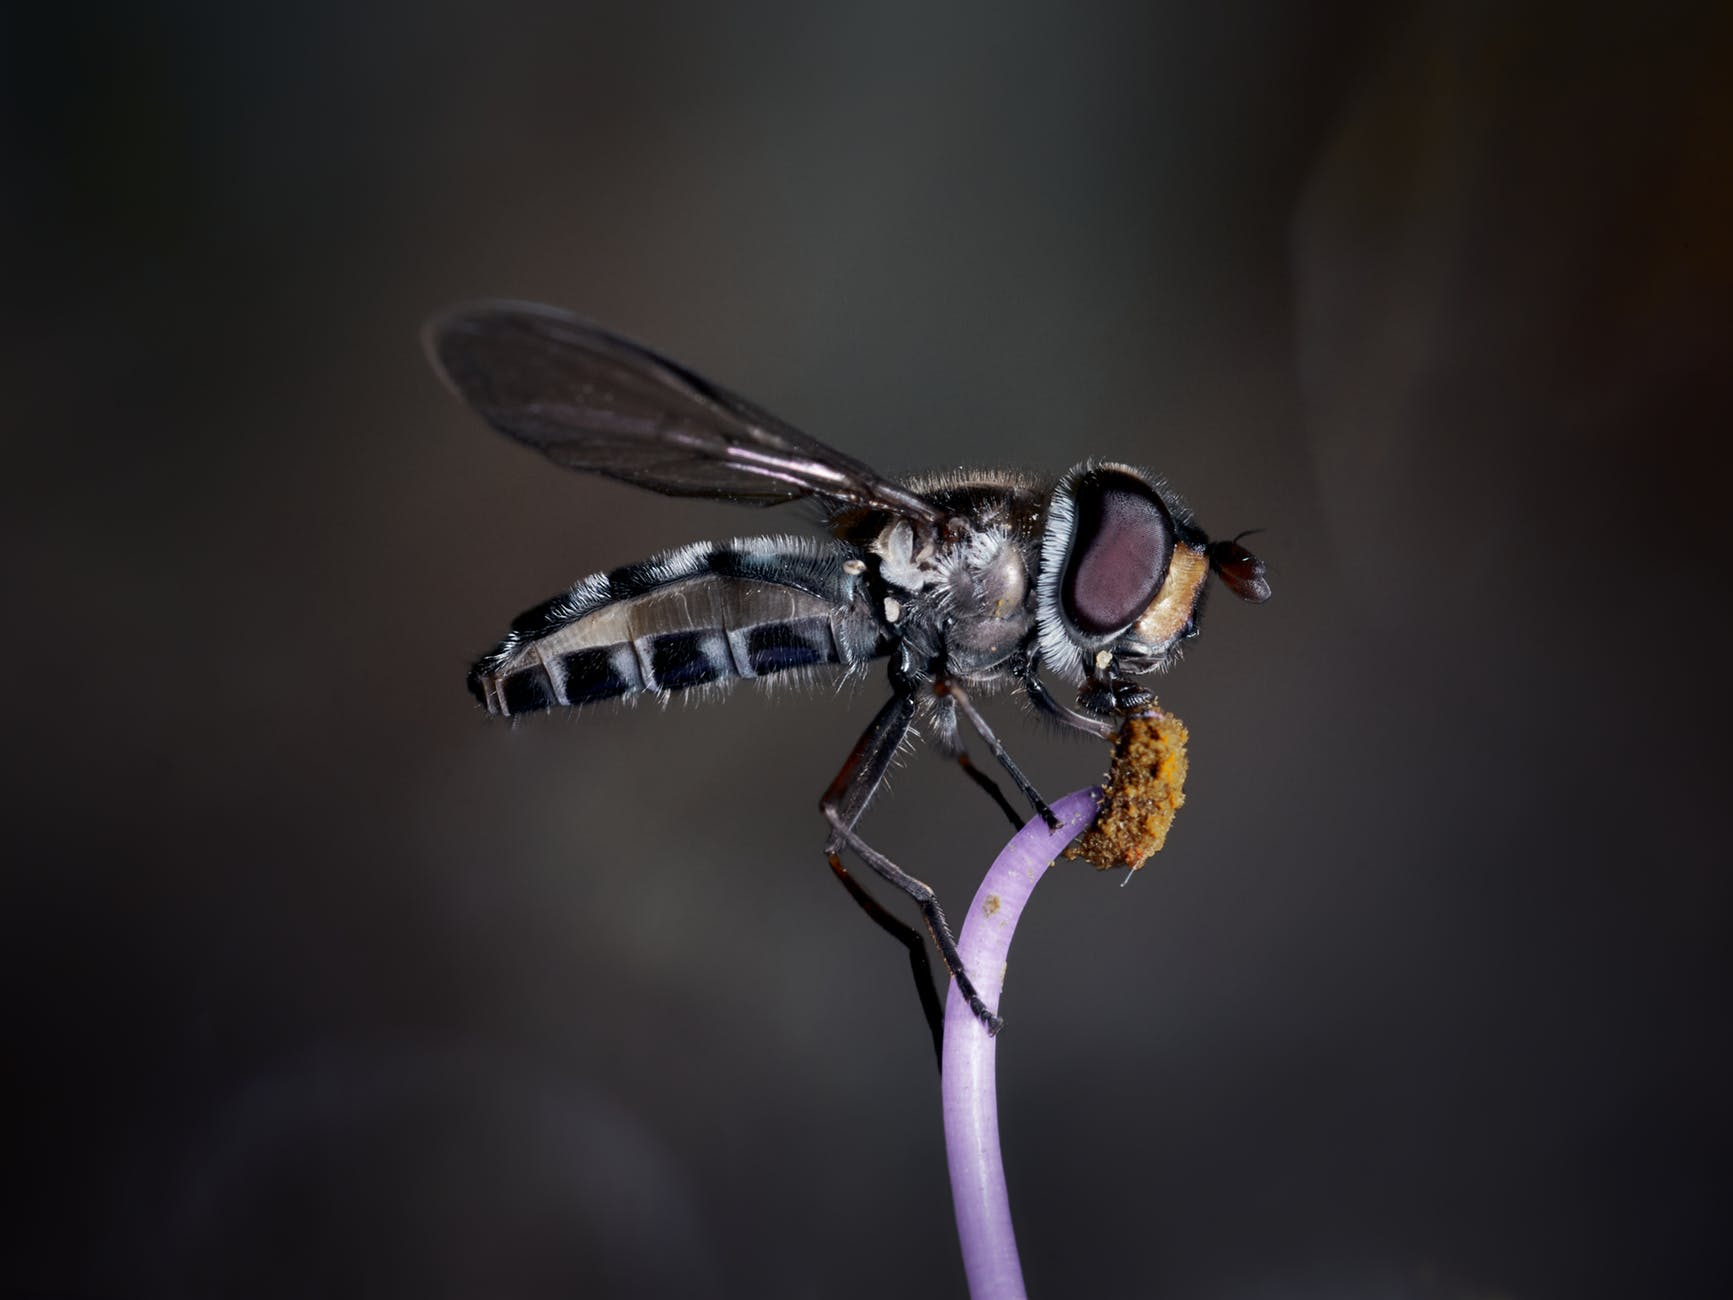 I heard a Fly Buzz When I Died by Emily Dickinson : Summary, Analysis and Questions 2